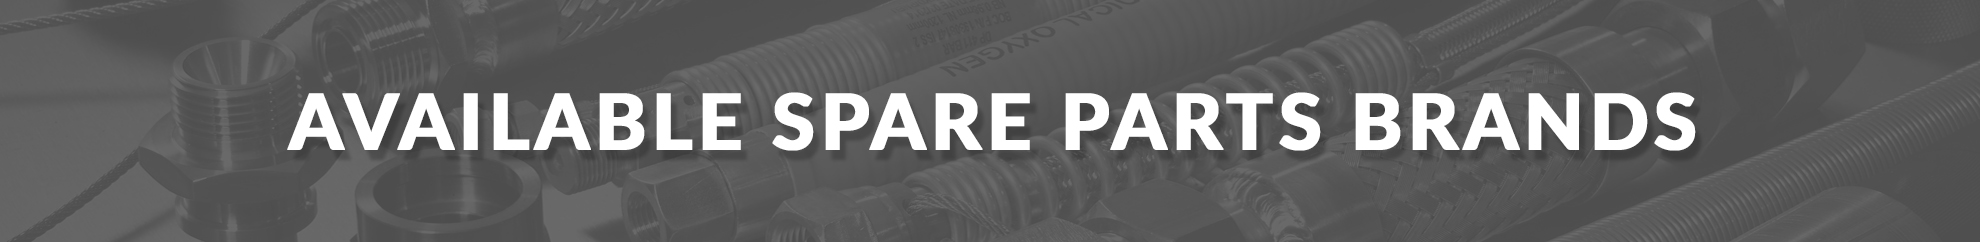 Heavy Equipment Spare Parts Philippines | Pinnacle Parts Co  Inc